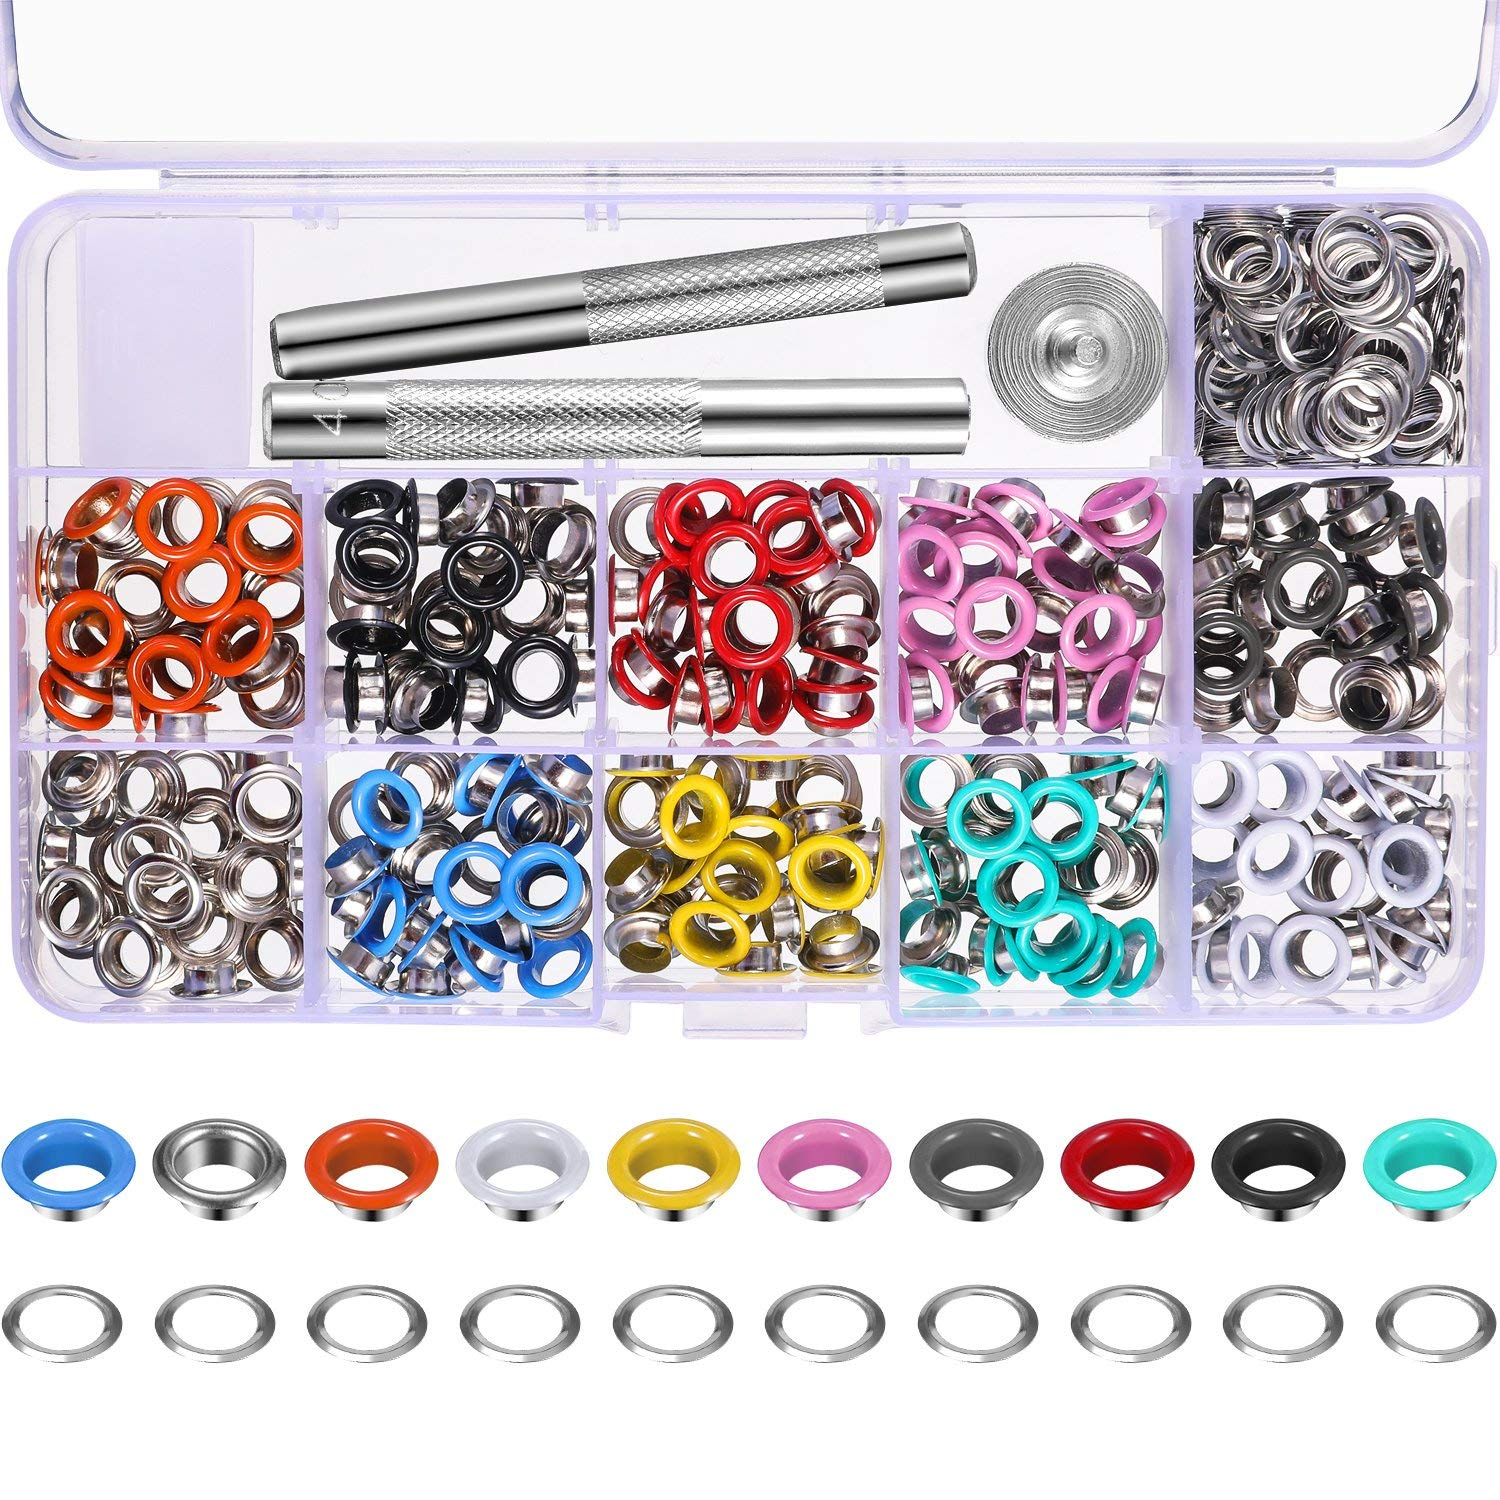 Bememo 300 Pieces Grommets Kit Metal Eyelets Shoes Clothes Crafts, 10 Colors (1/4 inch)